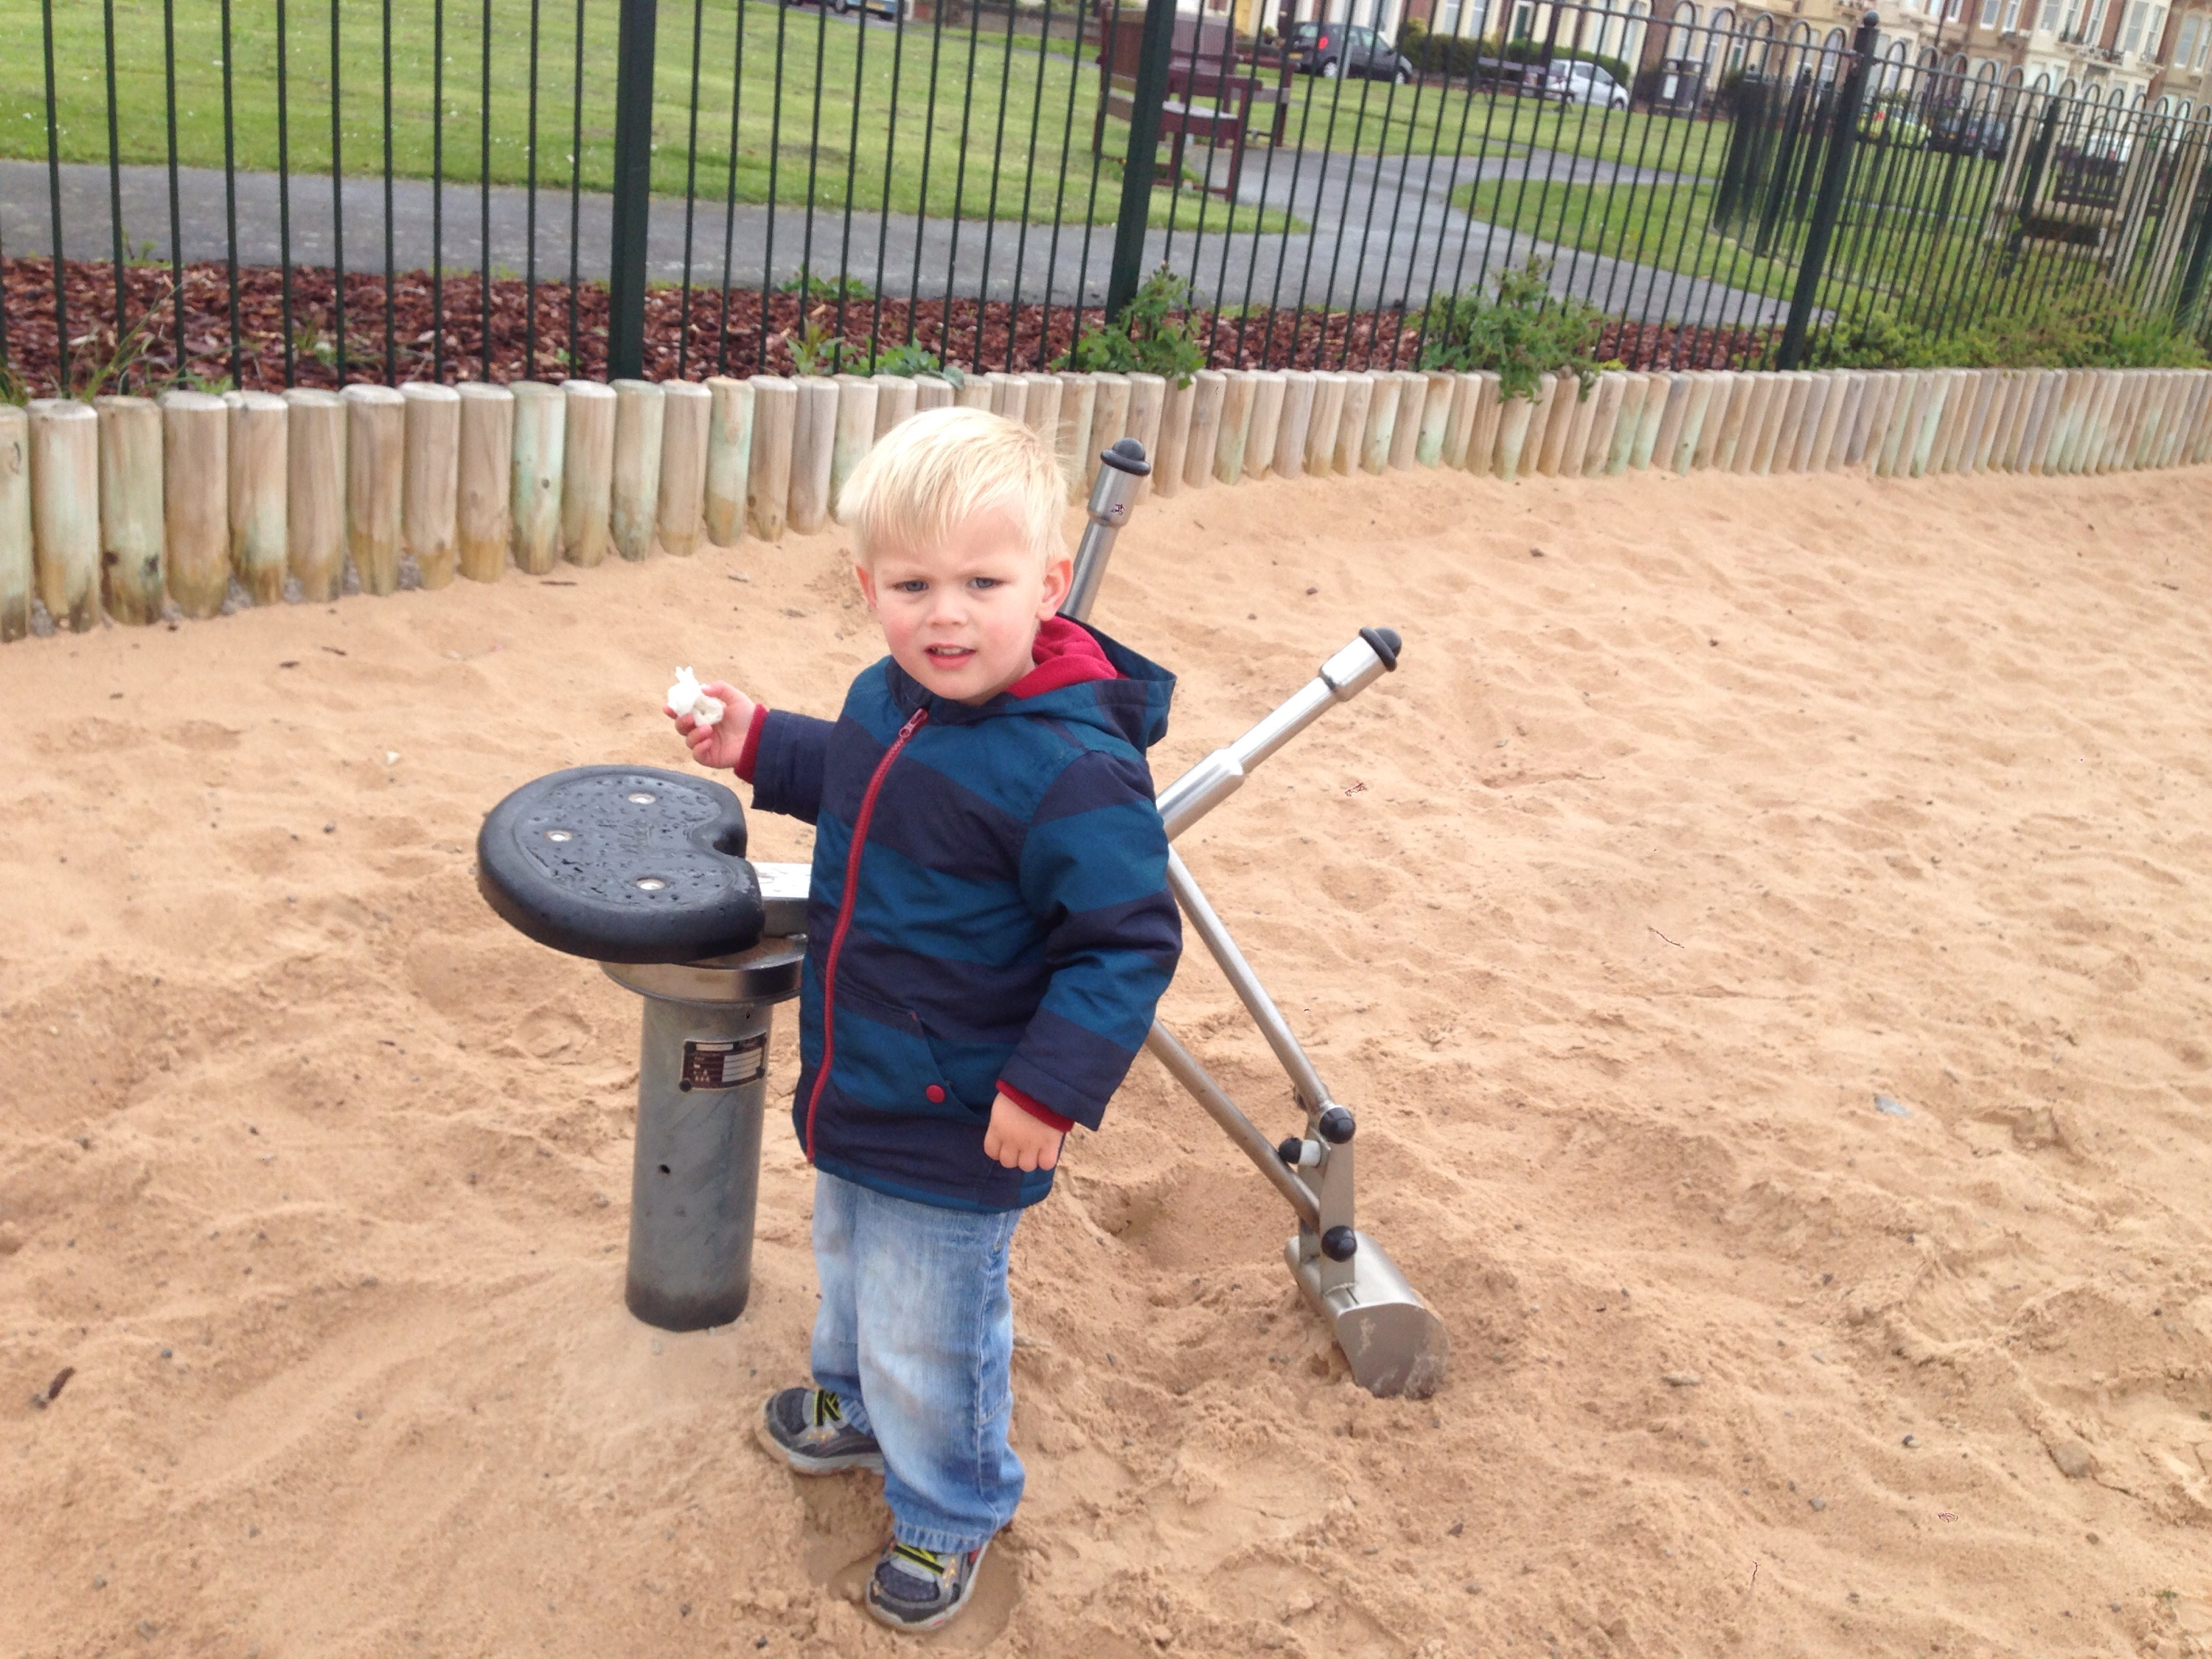 playgrounds in north tyneside cullercoats